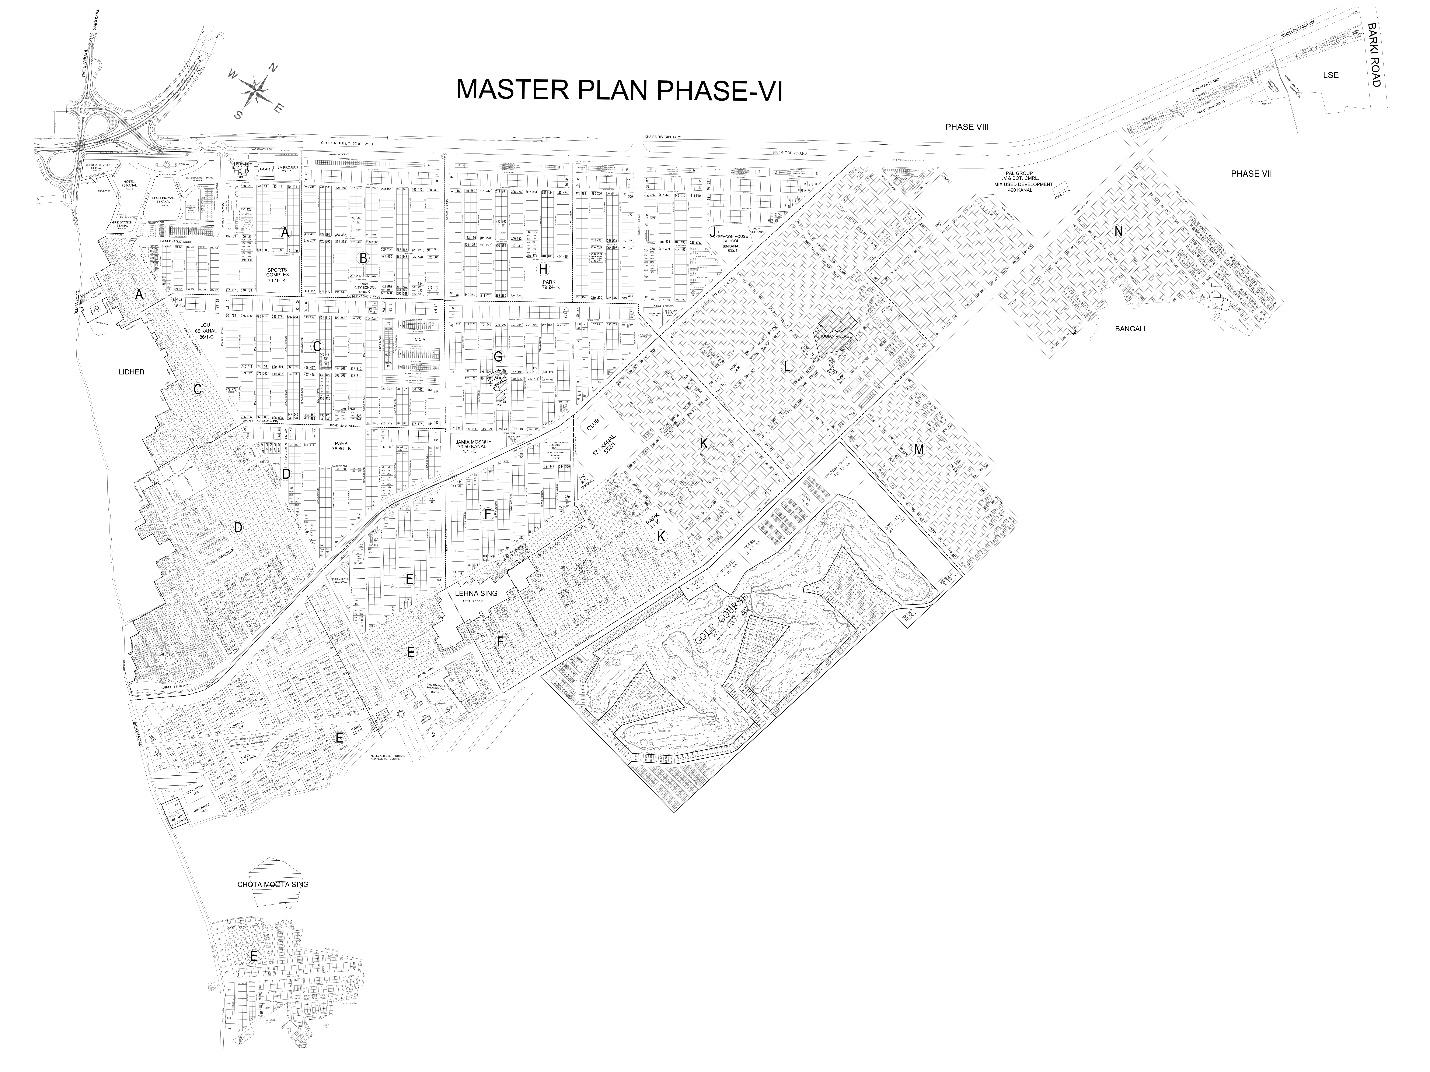 DHA Phase 6 Master Plan